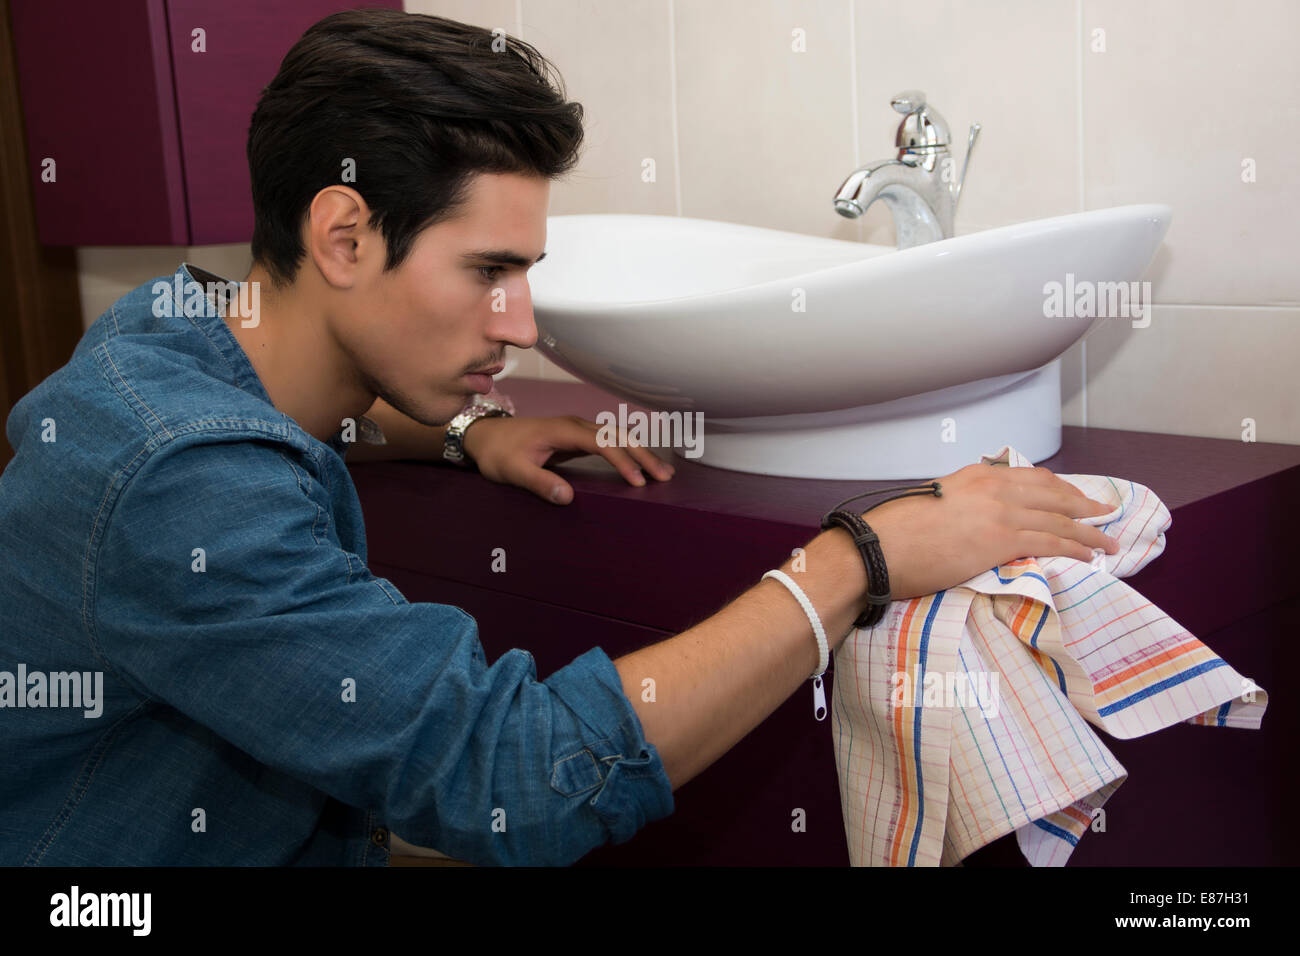 Handsome young man kneeling down with a cloth in his hand cleaning the bathroom interior wiping the ceramic hand - Stock Image